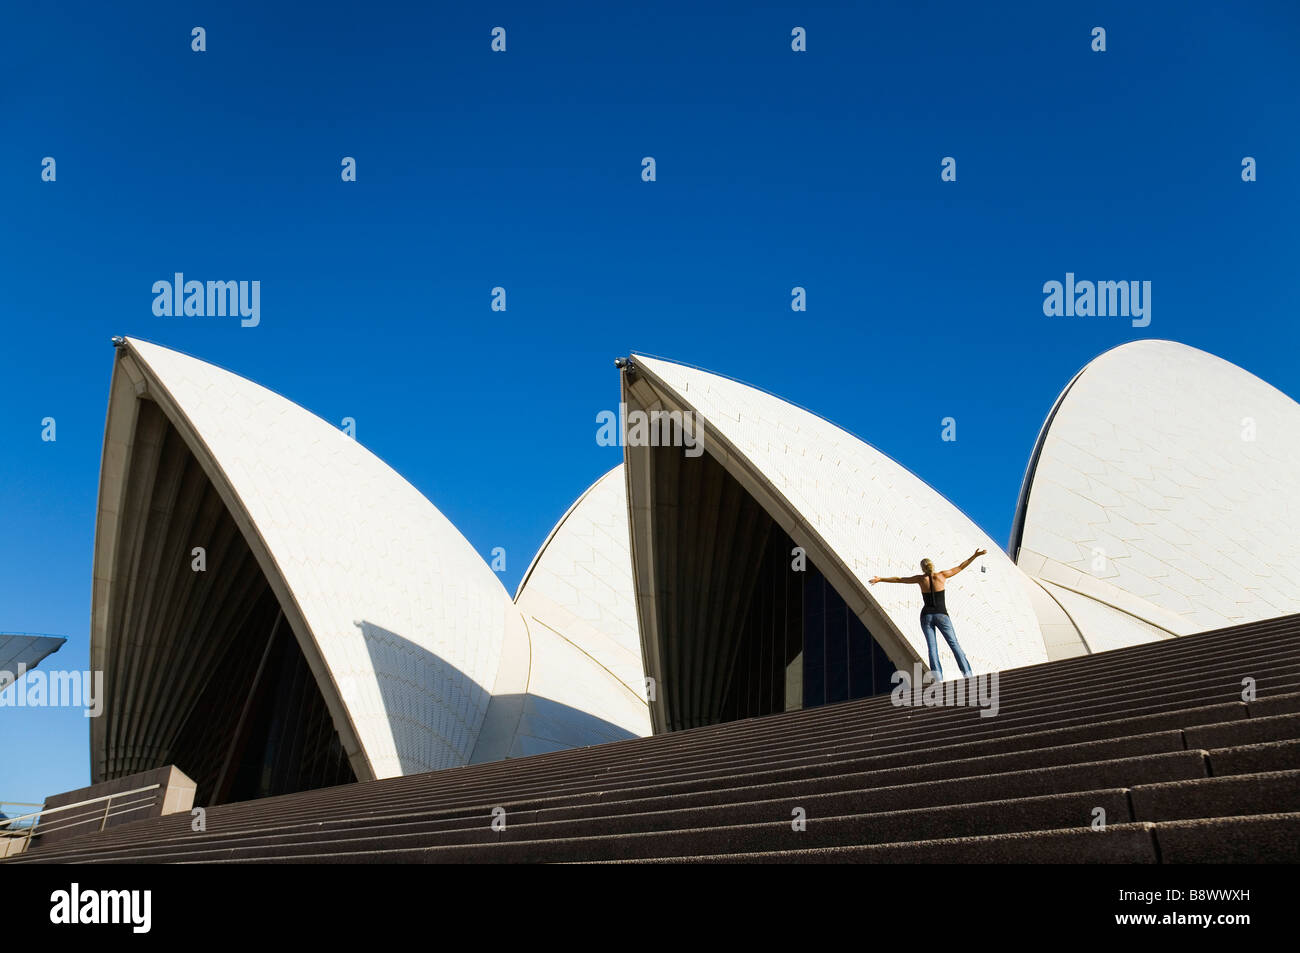 Ein Tourist auf den Stufen des Sydney Opera House.  Sydney, New South Wales, Australien Stockbild